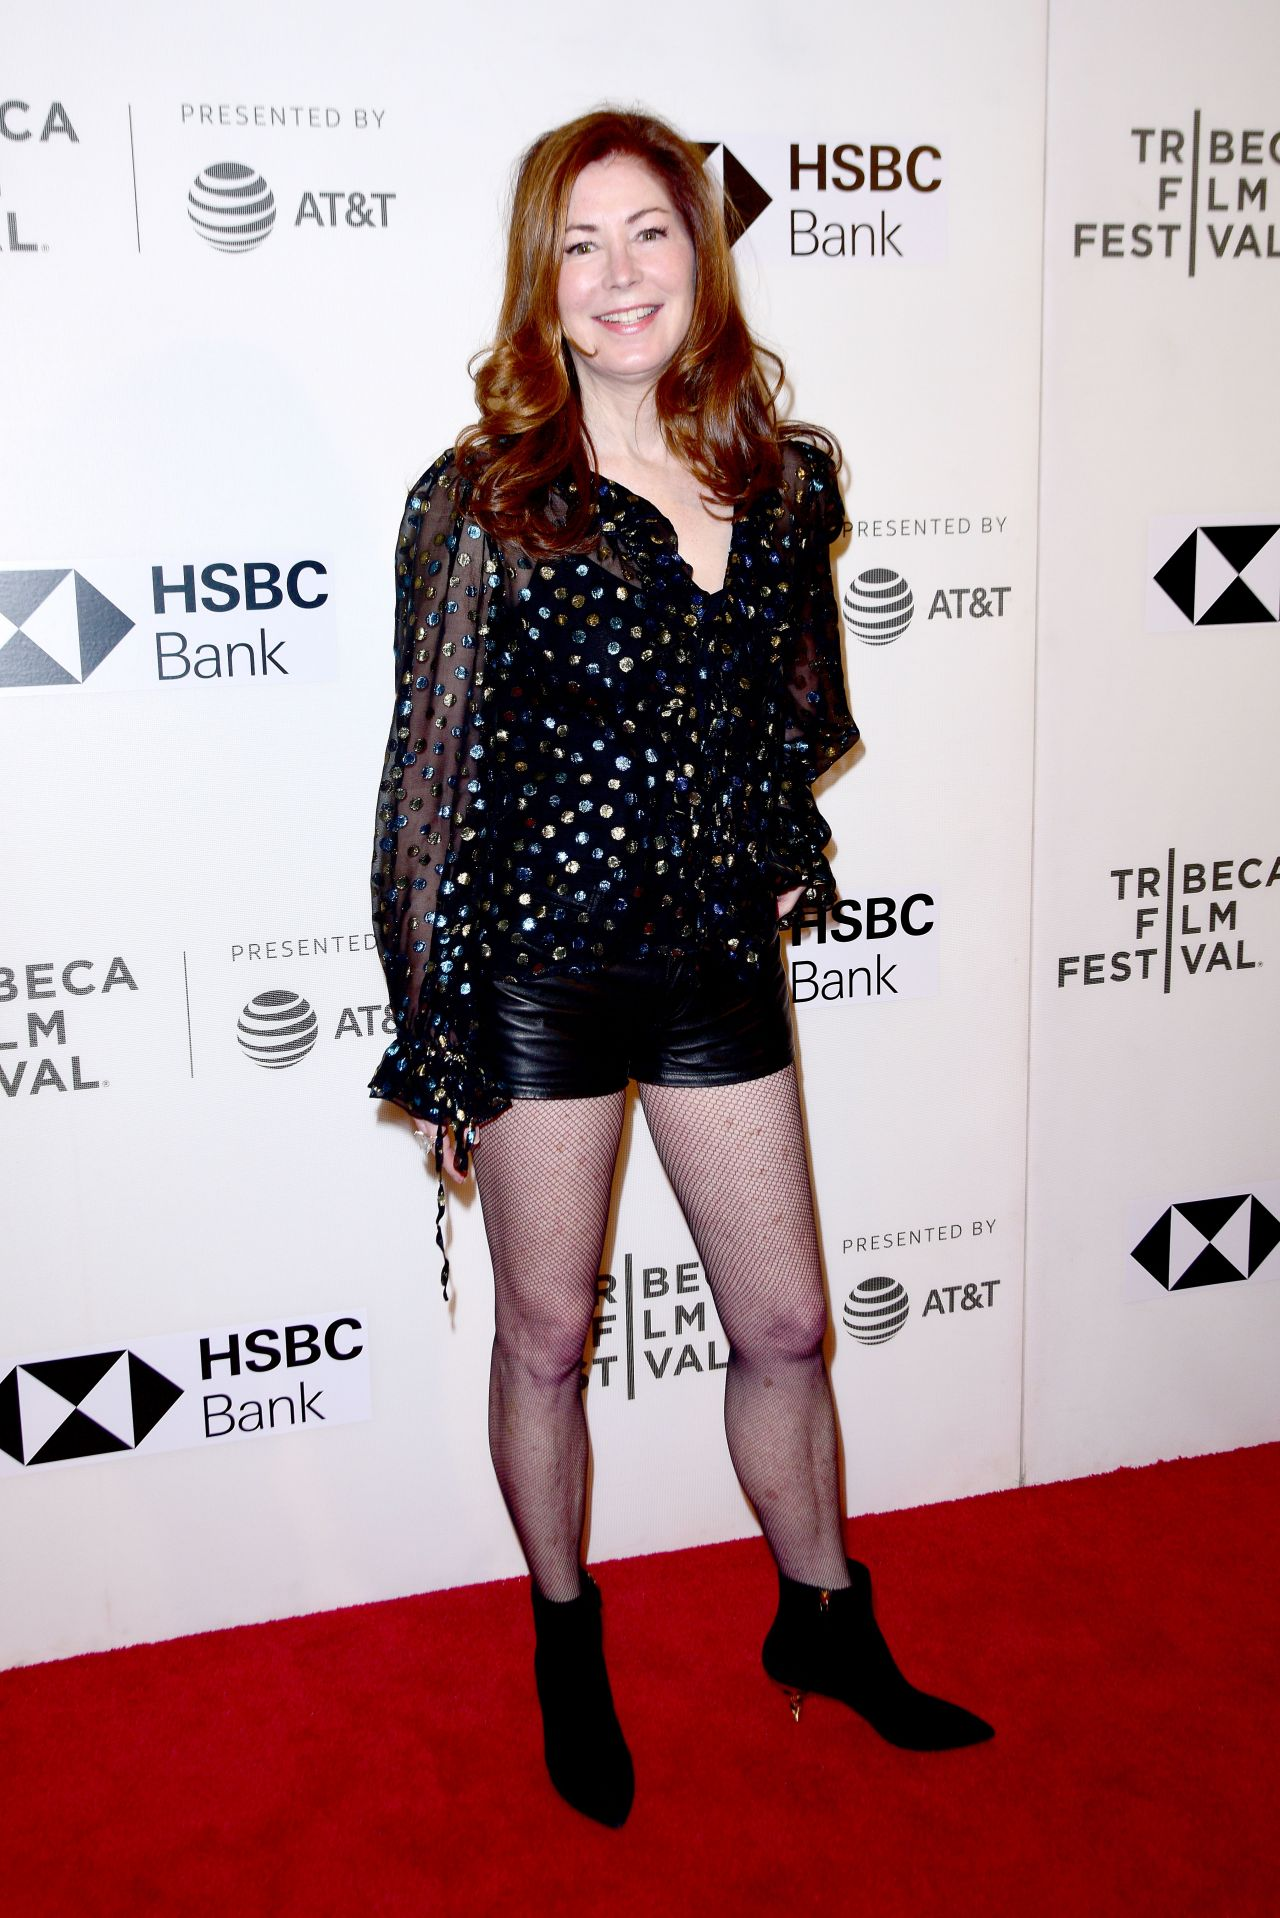 Dana Delany The Seagull Premiere 2018 Tribeca Film